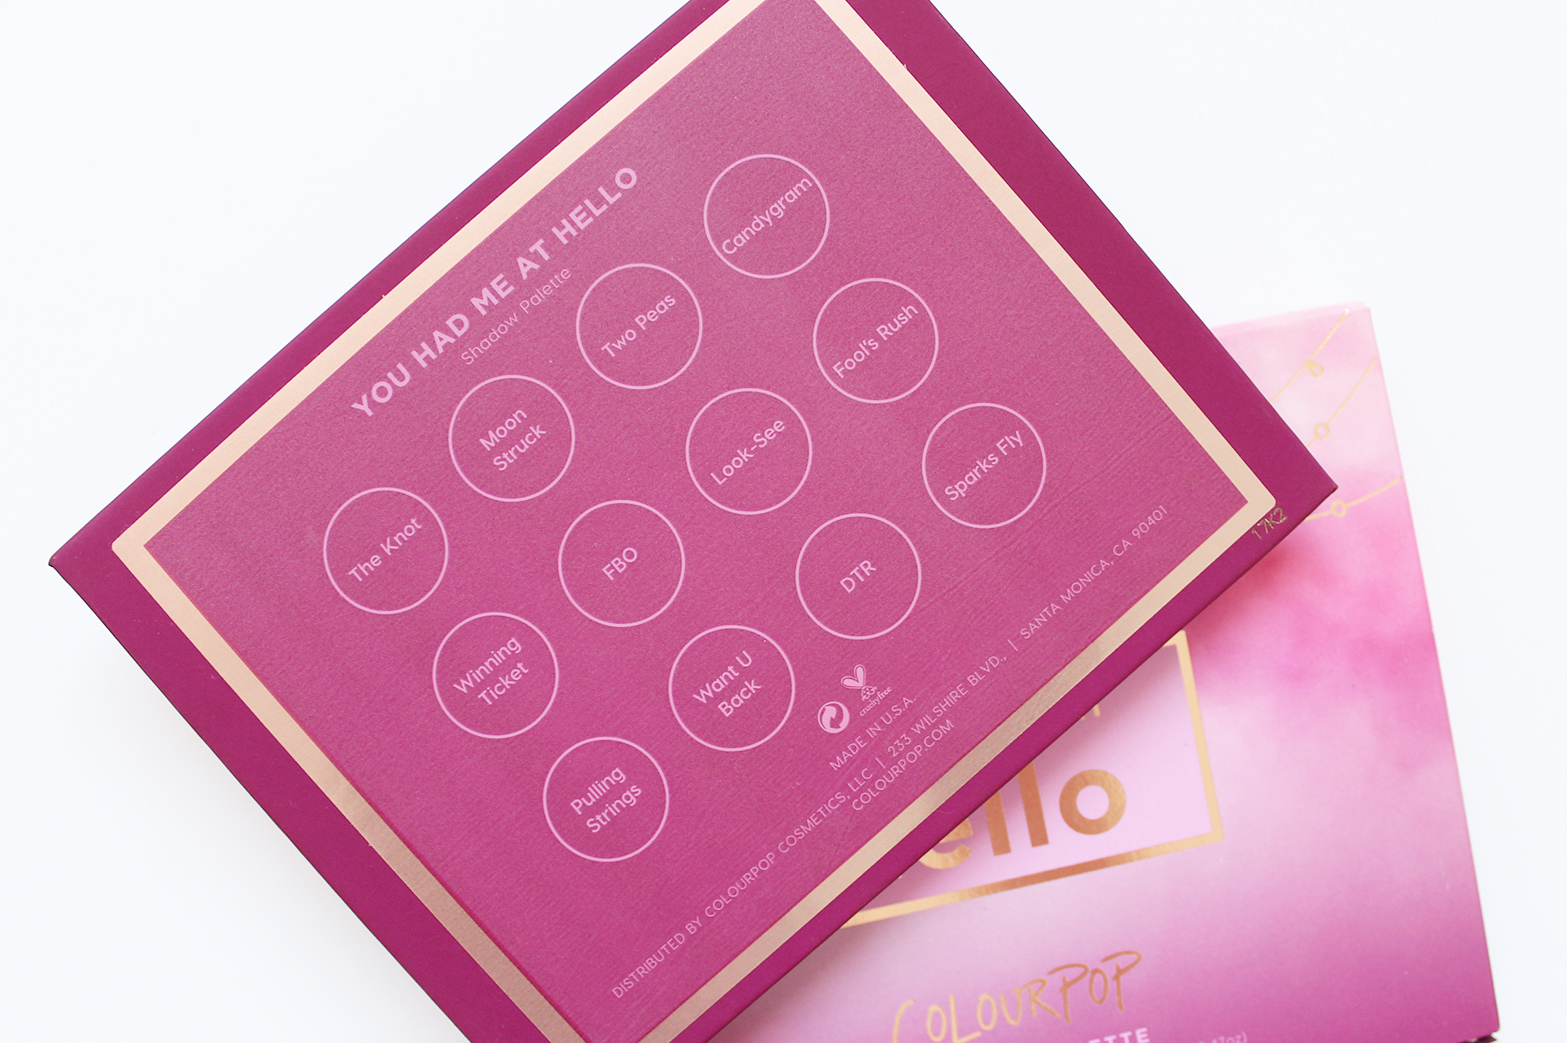 COLOURPOP | You Had Me At Hello Pressed Shadow Palette - Review + Swatches - CassandraMyee